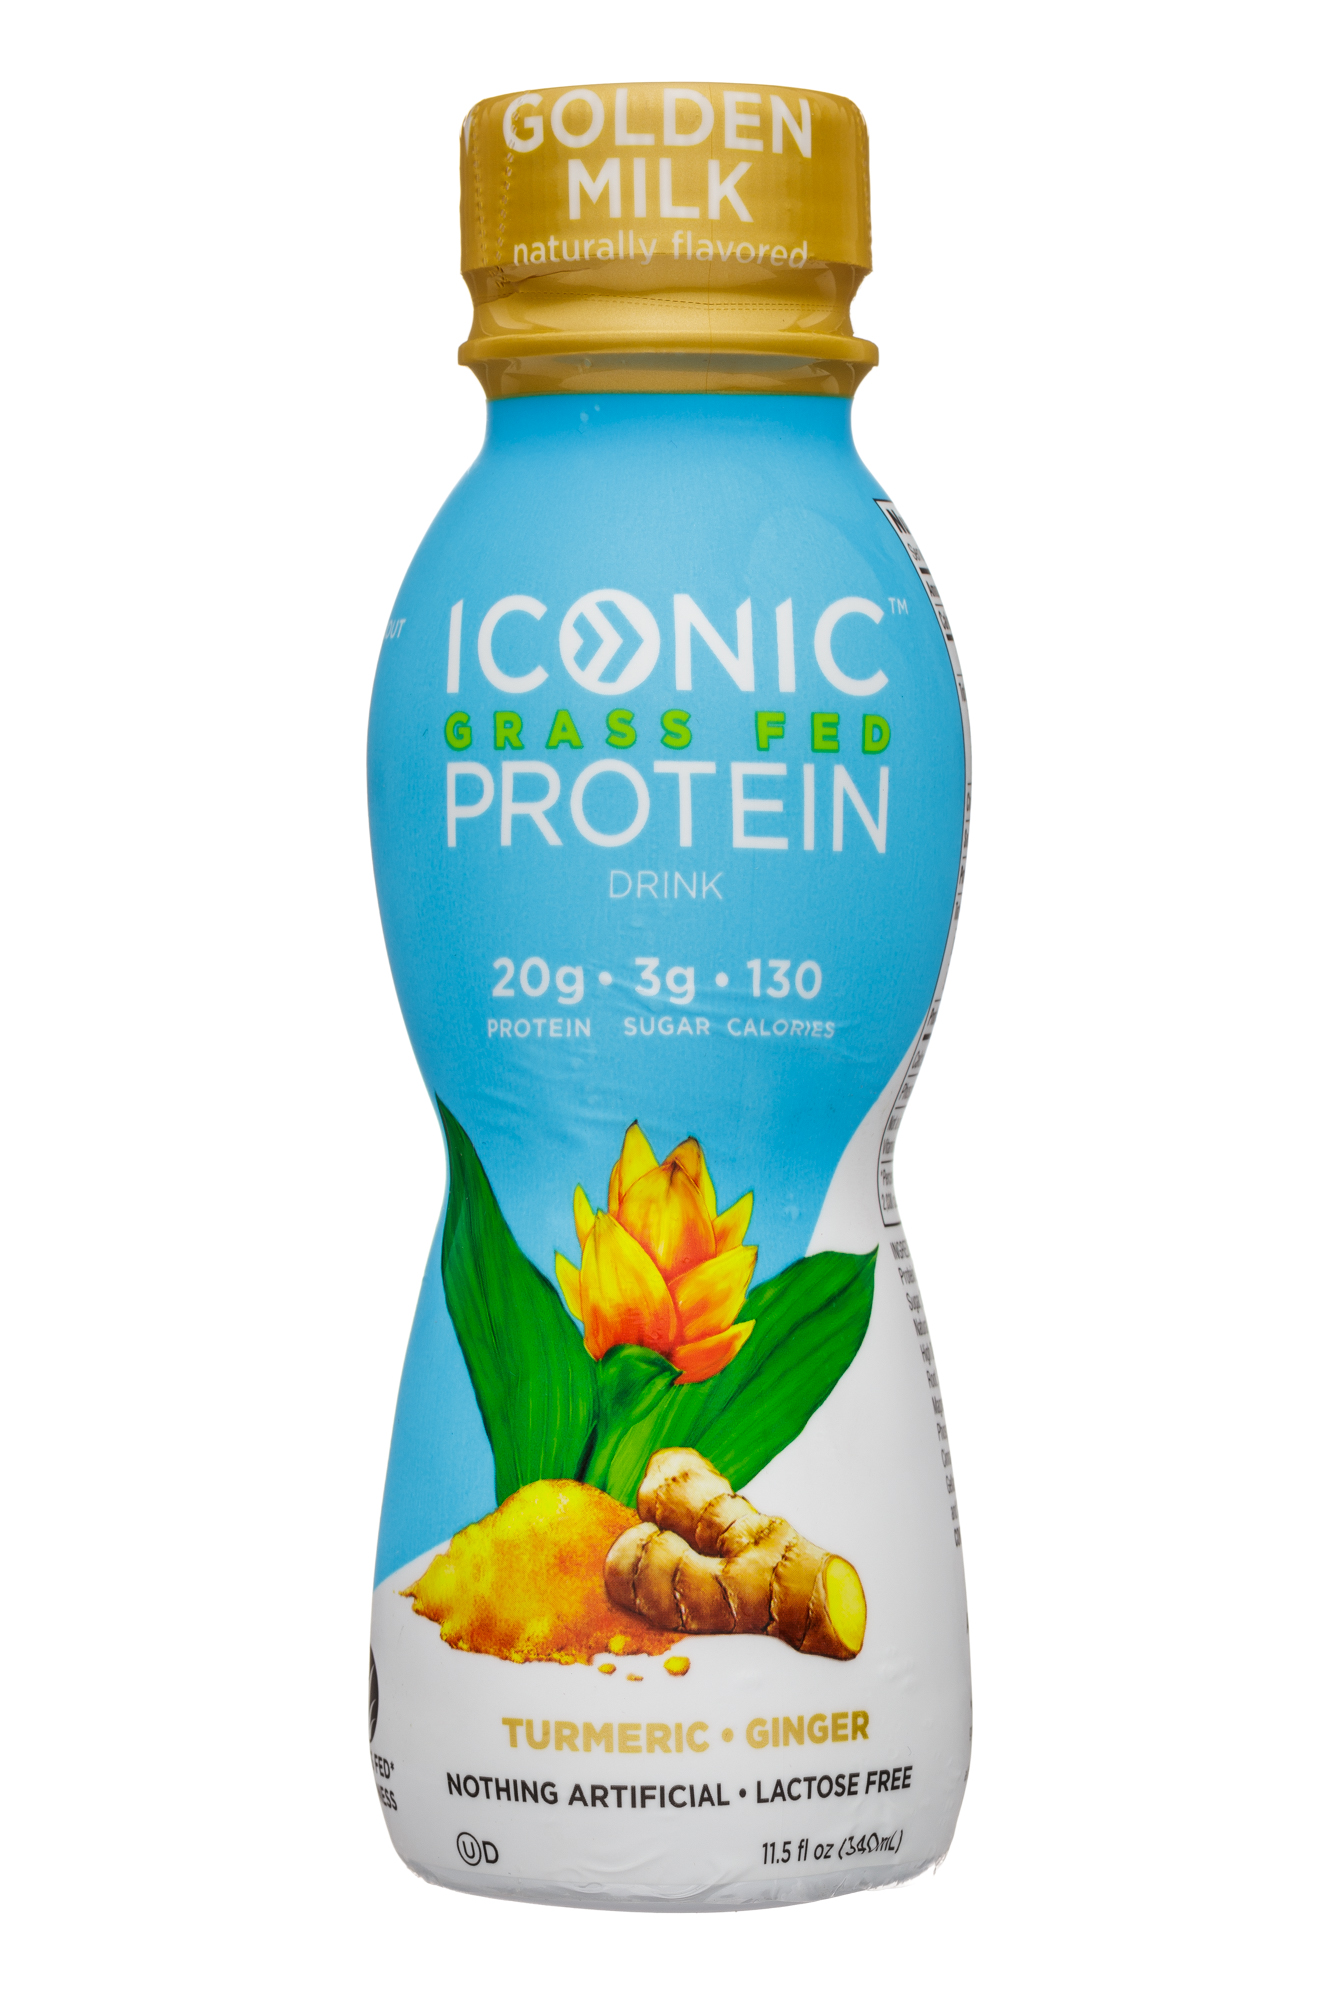 Iconic: Iconic-12oz-GrassFedProtein-TurmericGinger-Front